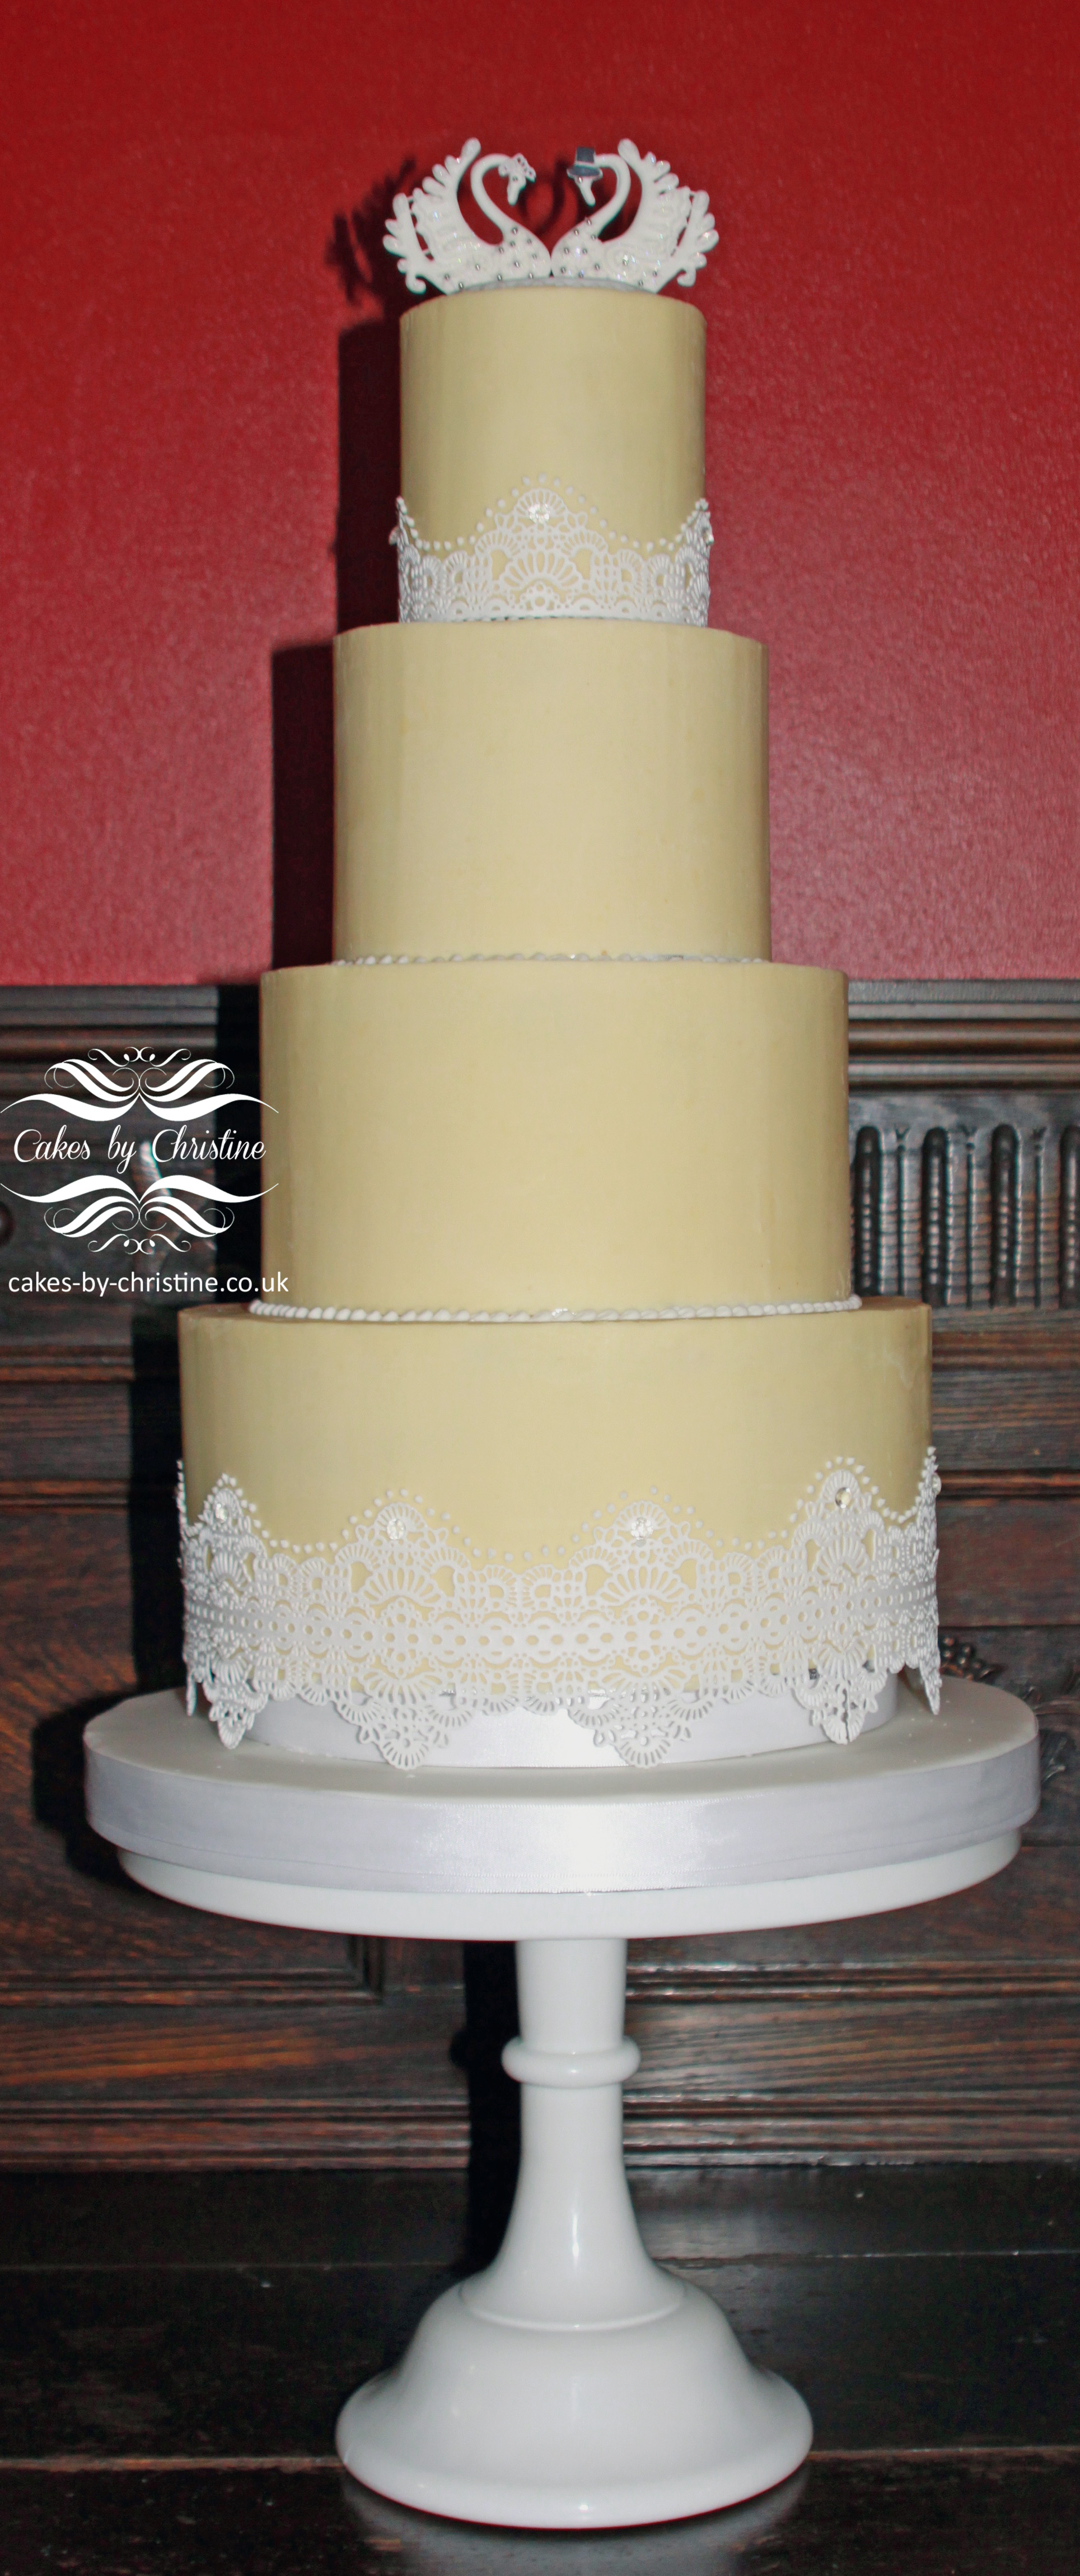 White chocolate ganache wedding cake | Cakes by Christine